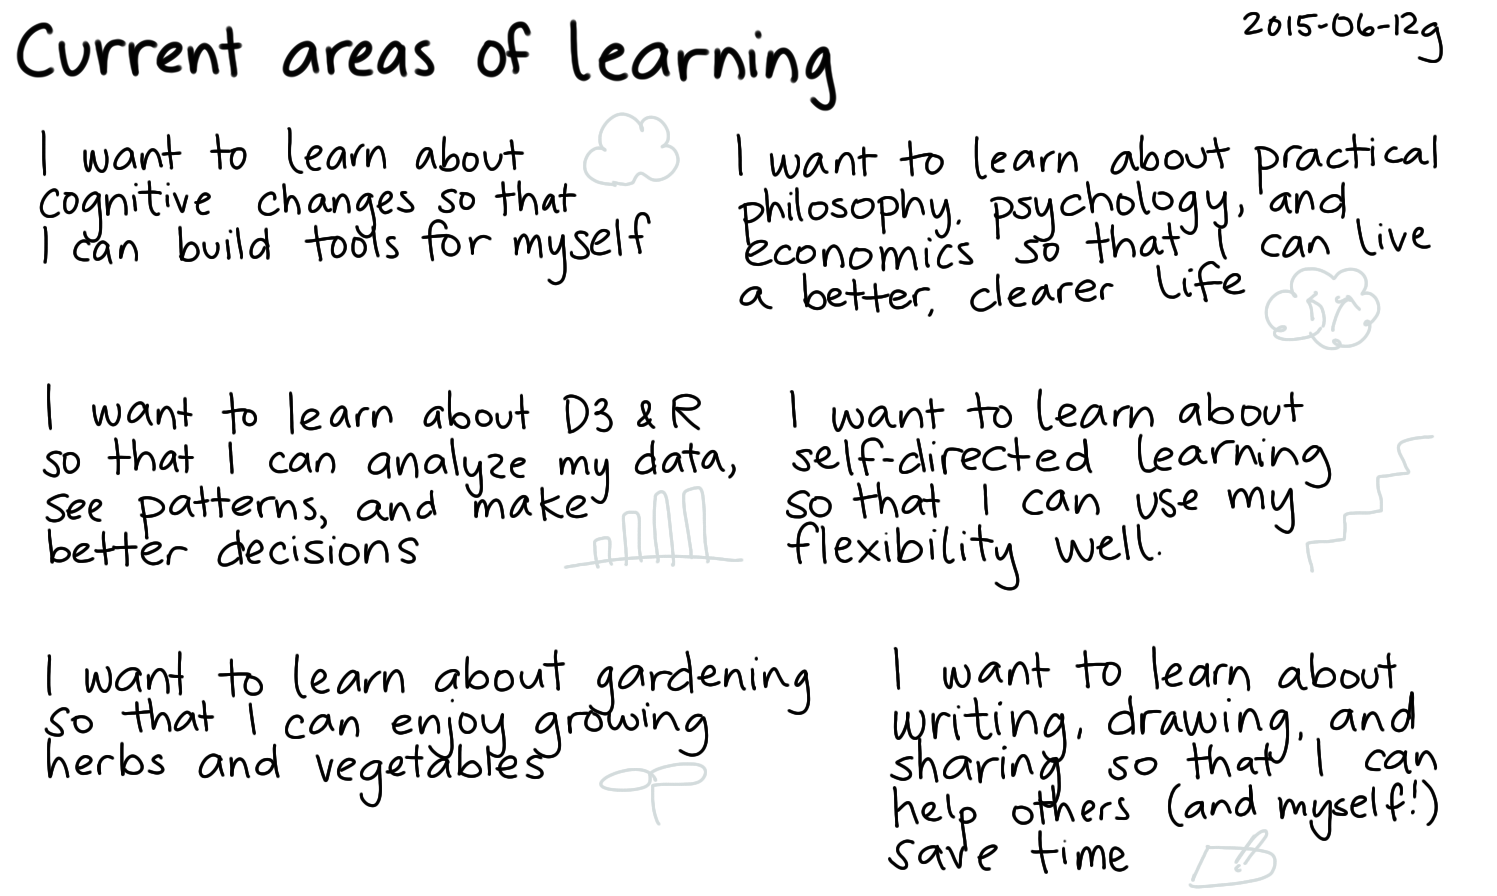 2015-06-12g Current areas of learning -- index card #learning #plans.png